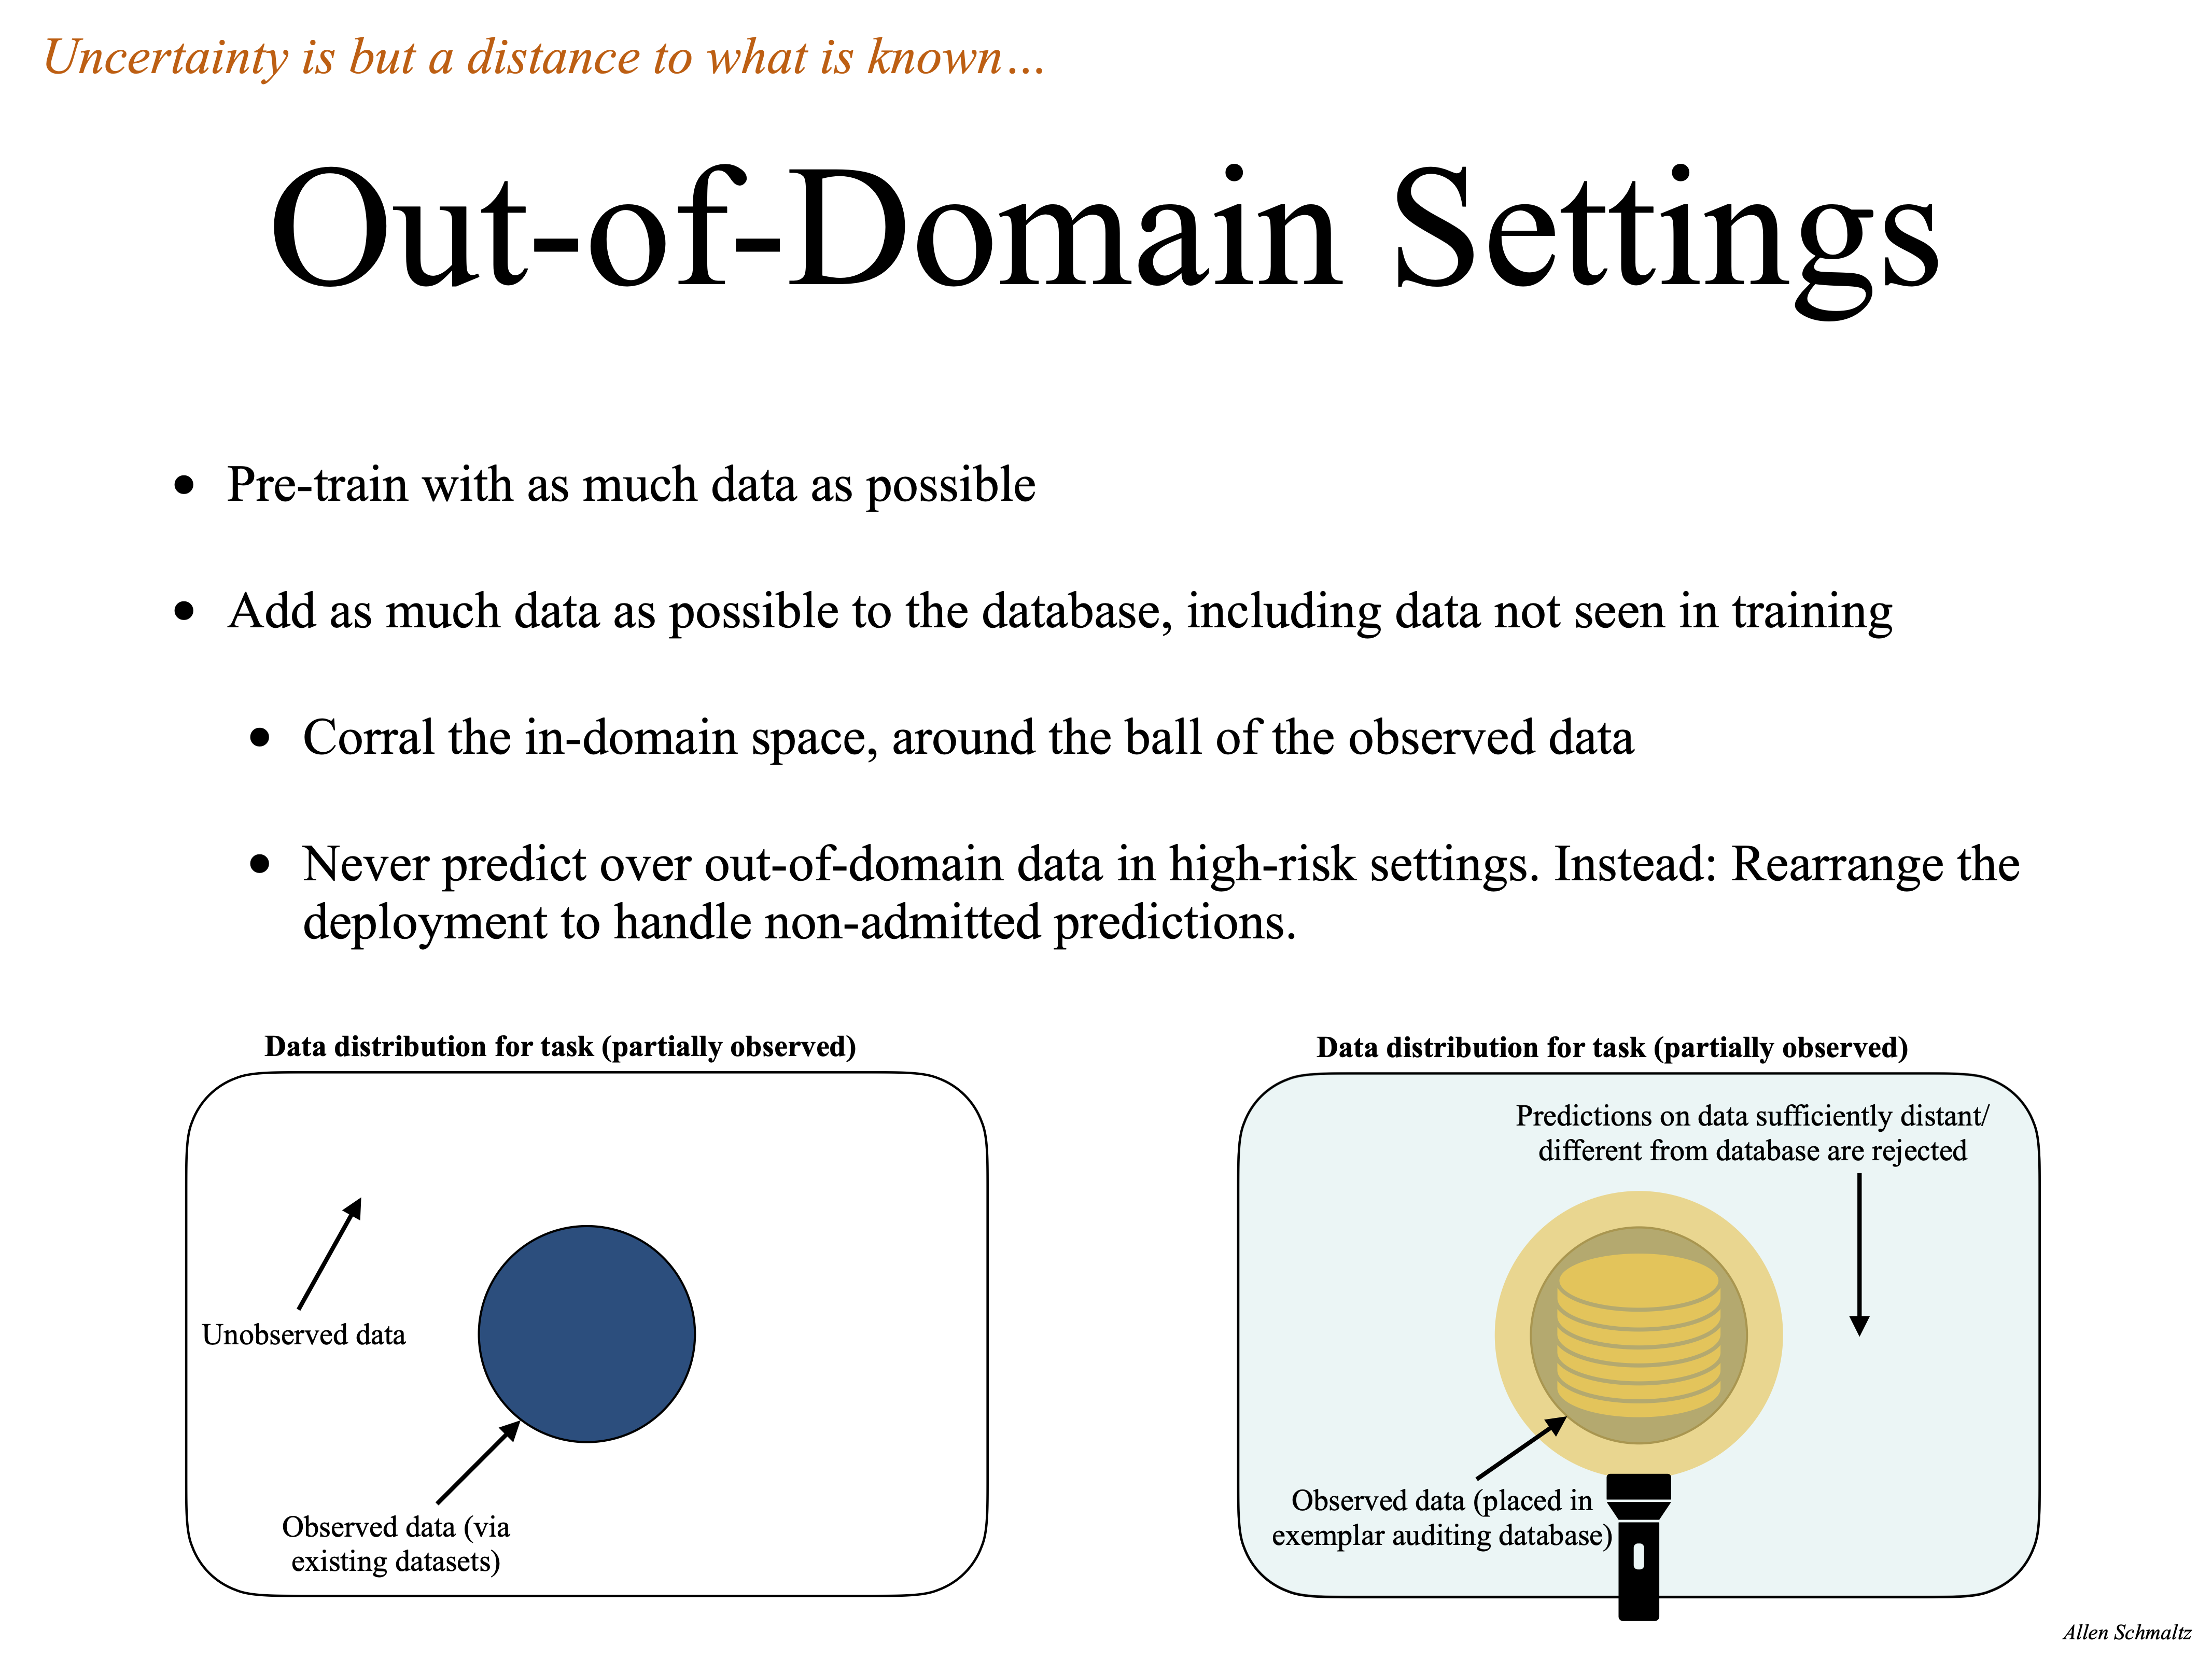 Out-of-Domain Settings